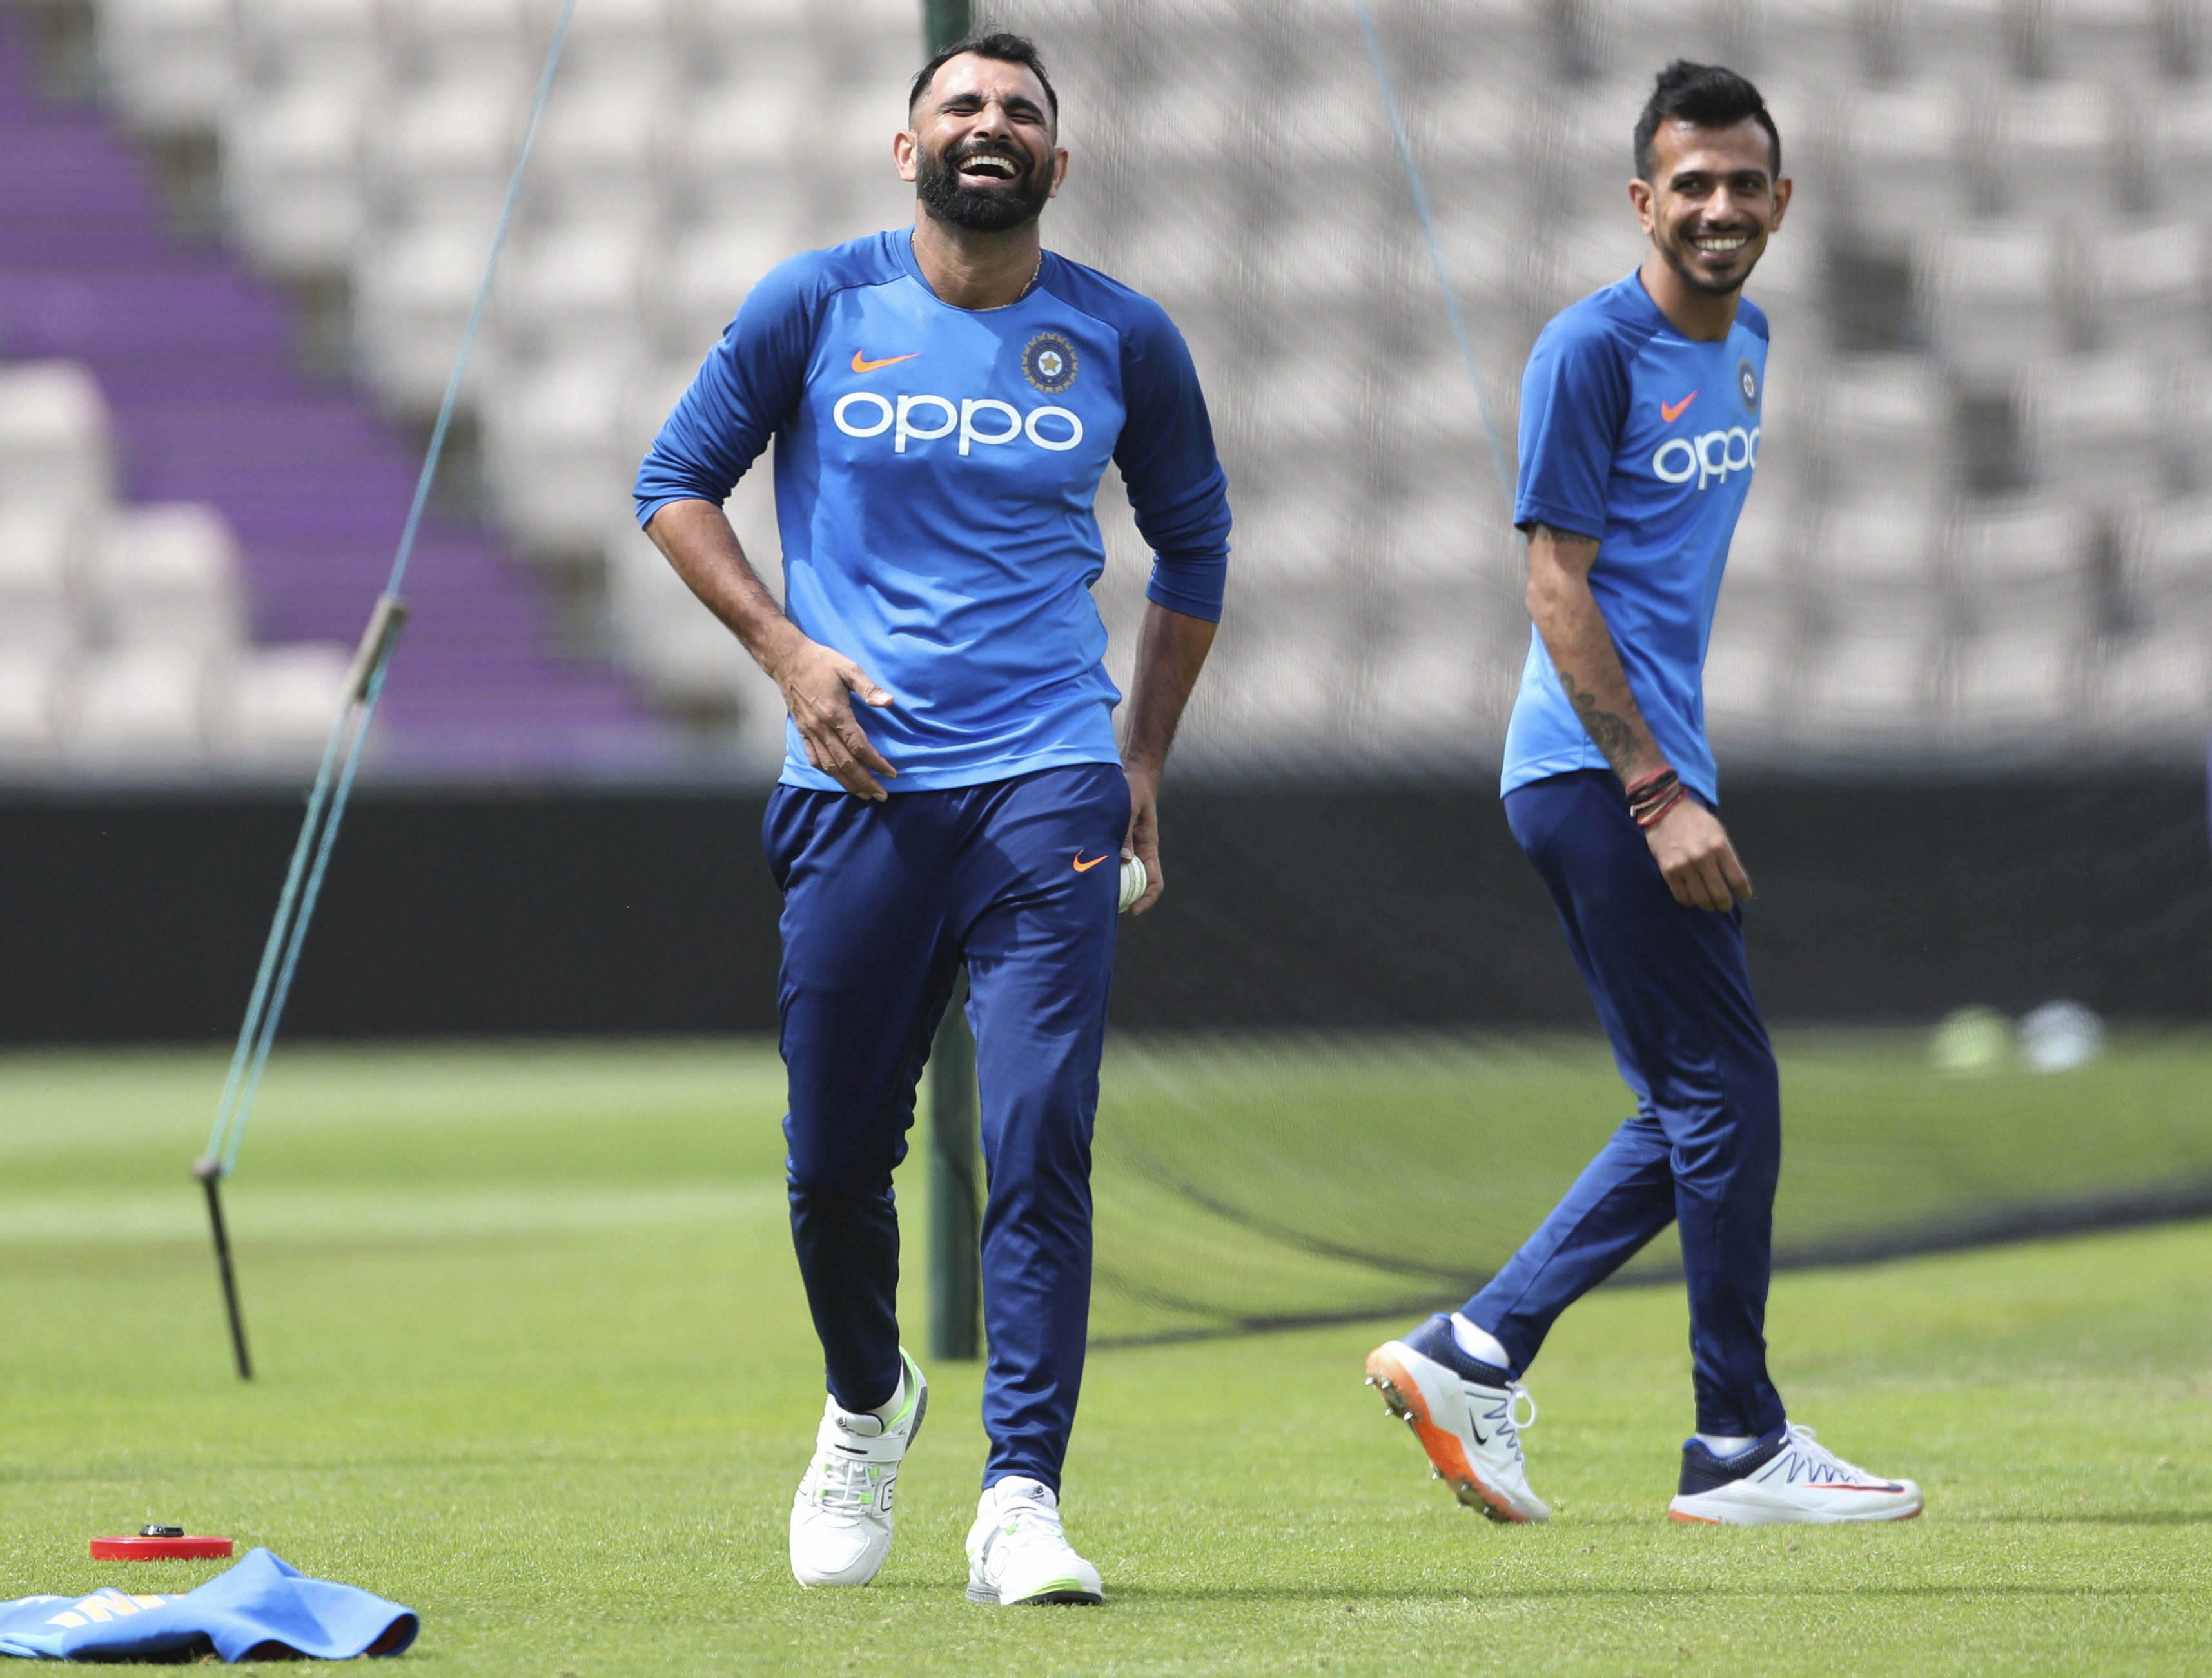 India's Mohammed Shami, left, and Yuzvendra Chahal share a laugh in the nets during a training session ahead of their Cricket World Cup match against South Africa at Ageas Bowl in Southampton - PTI